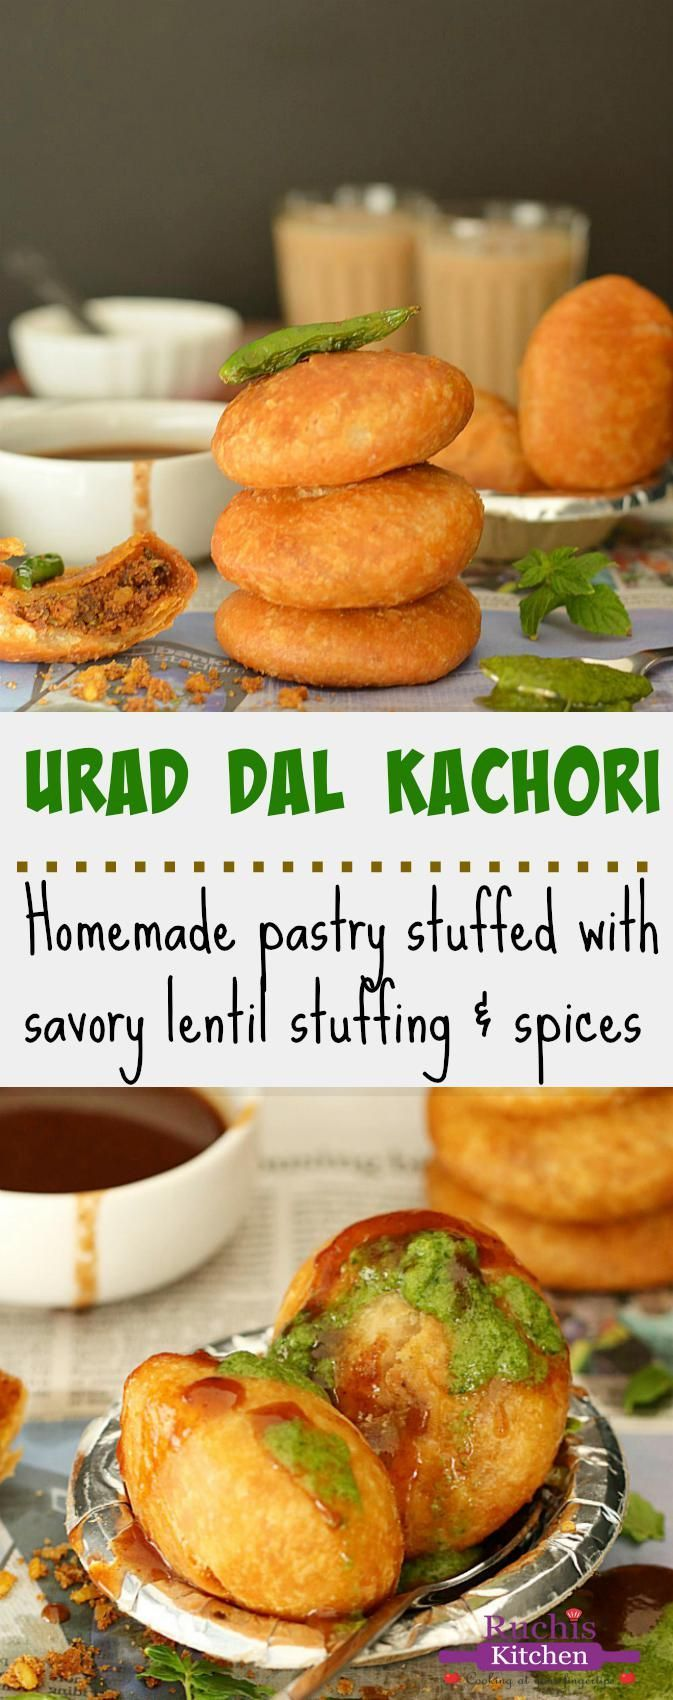 Crispy flaky and delicious urad dal kachori is my all time favorite an irresistible and yummy snack filled with savory lentil stuffing and spices veg indian snack recipe via forumfinder Choice Image